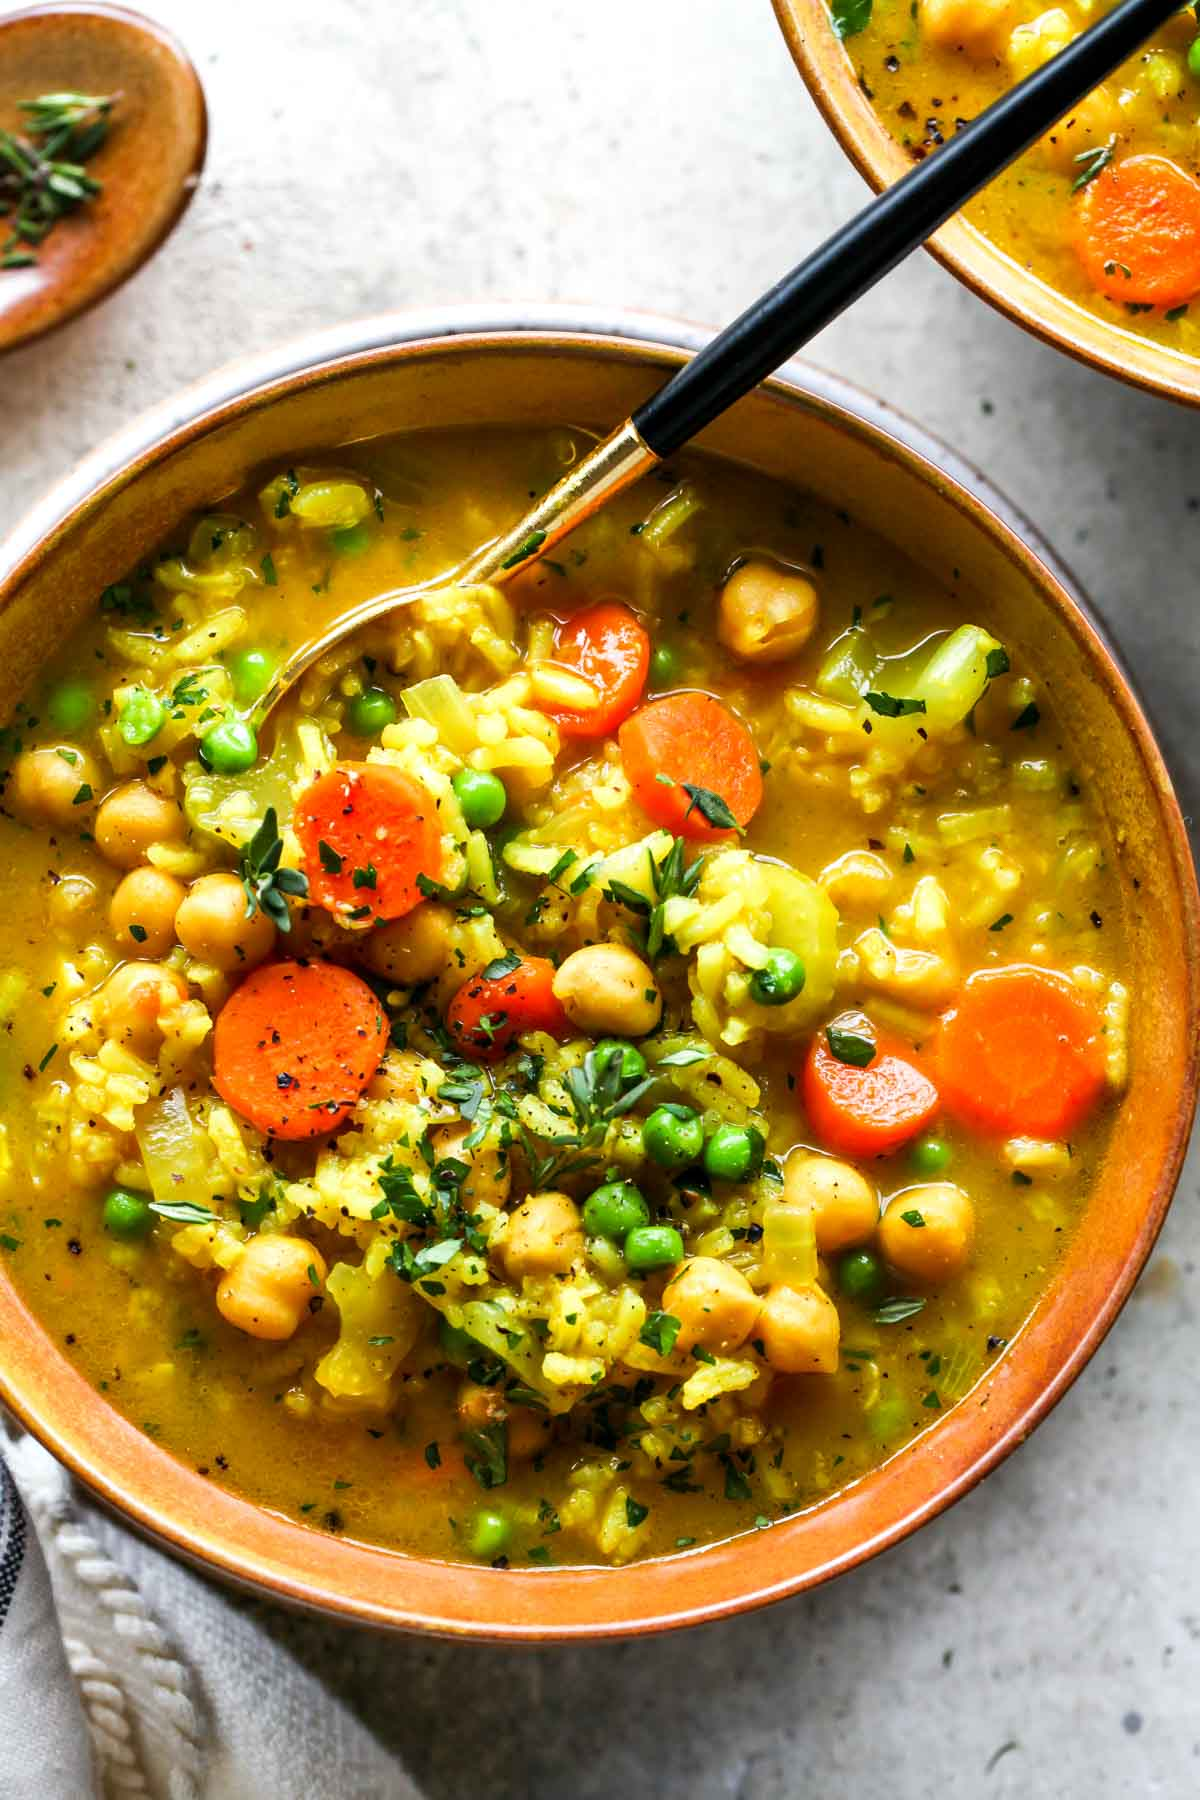 Chickpea and rice soup with a spoon removing a spoonful